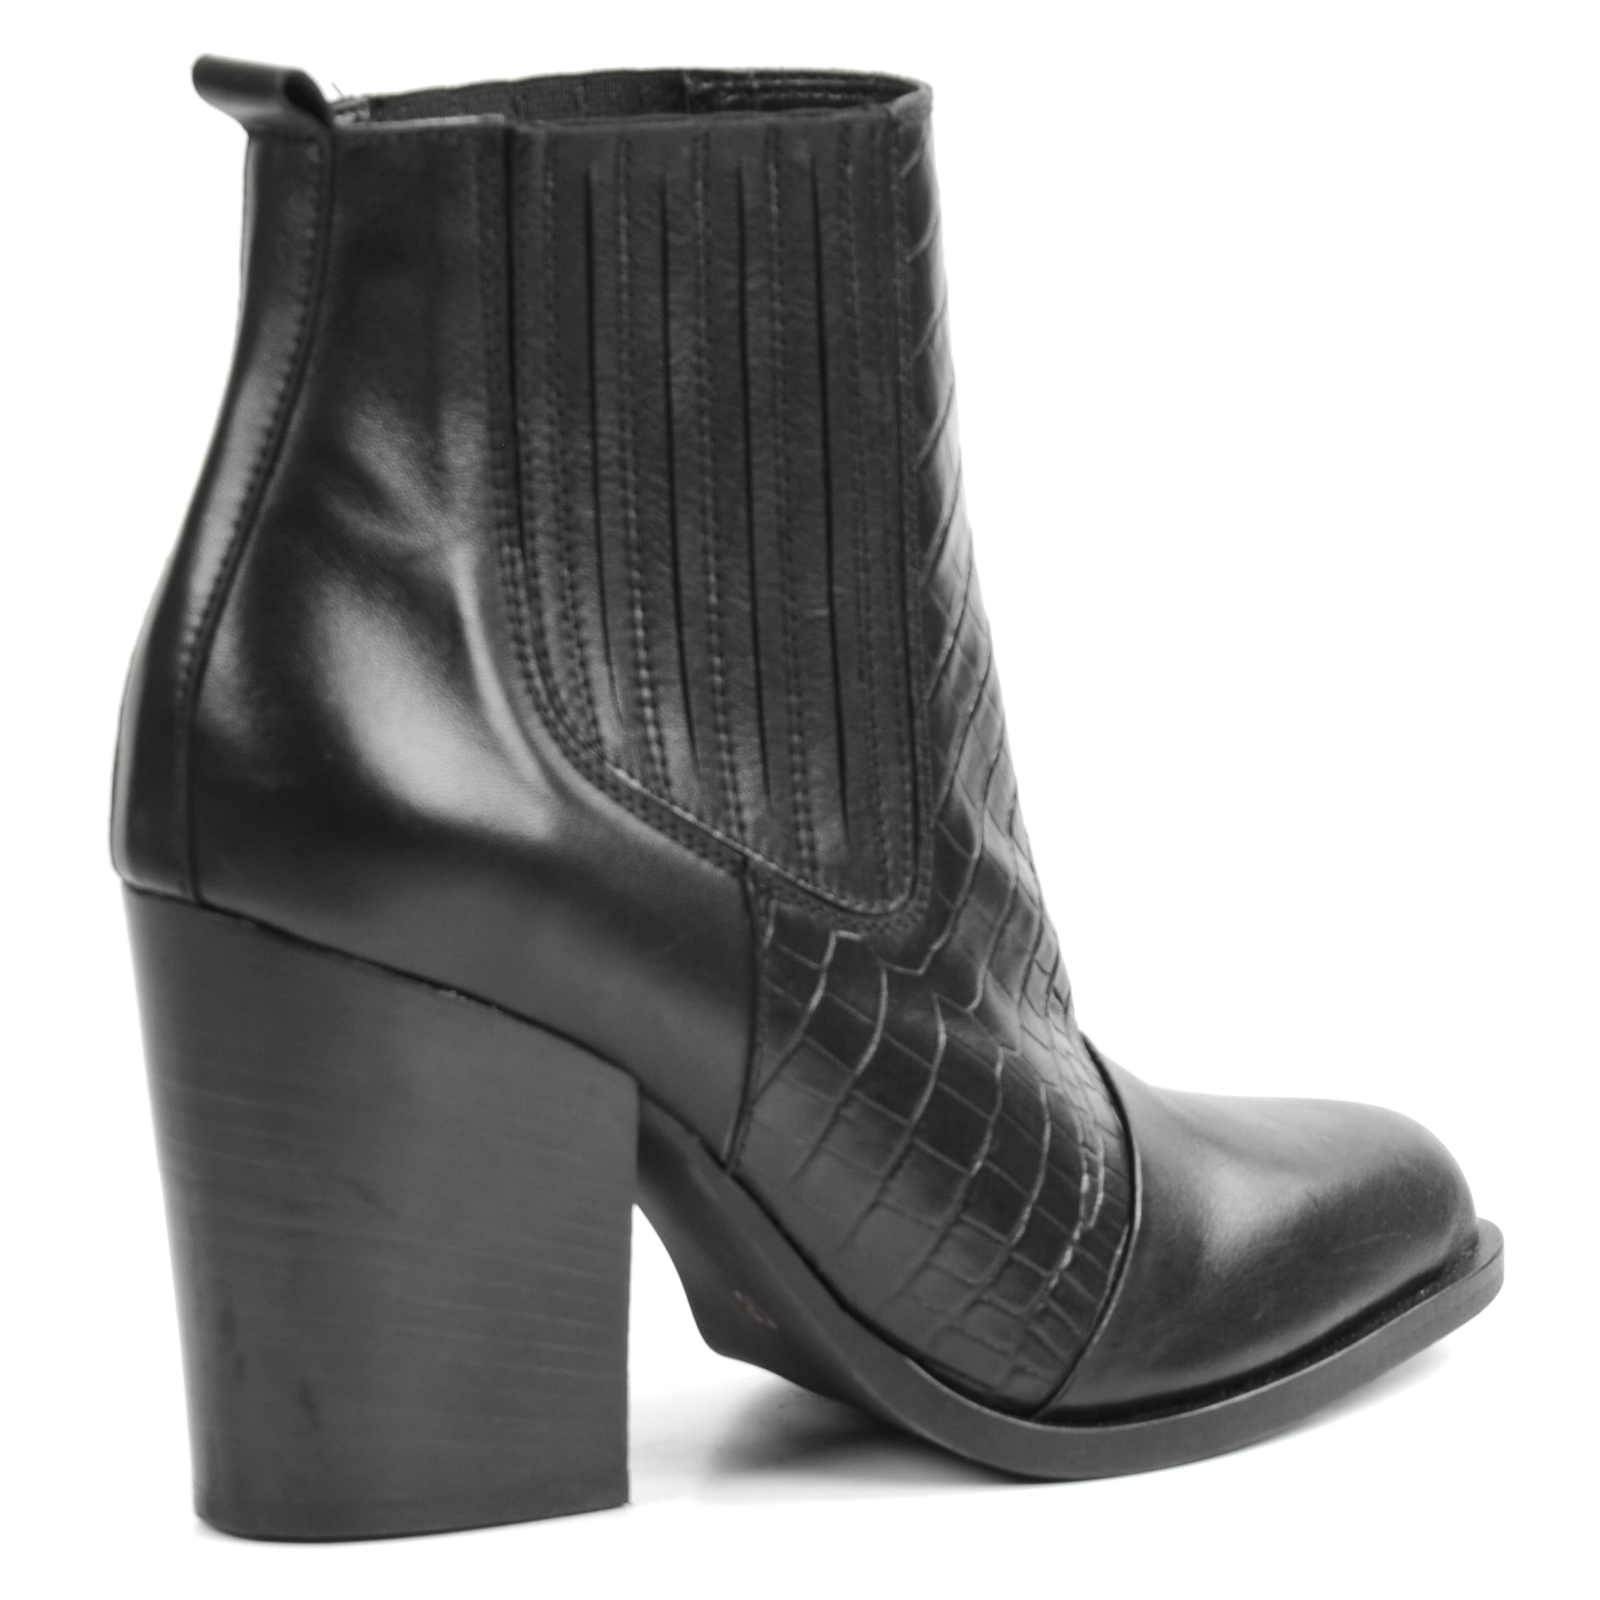 croco chelsea boots mit blockabsatz schwarz. Black Bedroom Furniture Sets. Home Design Ideas